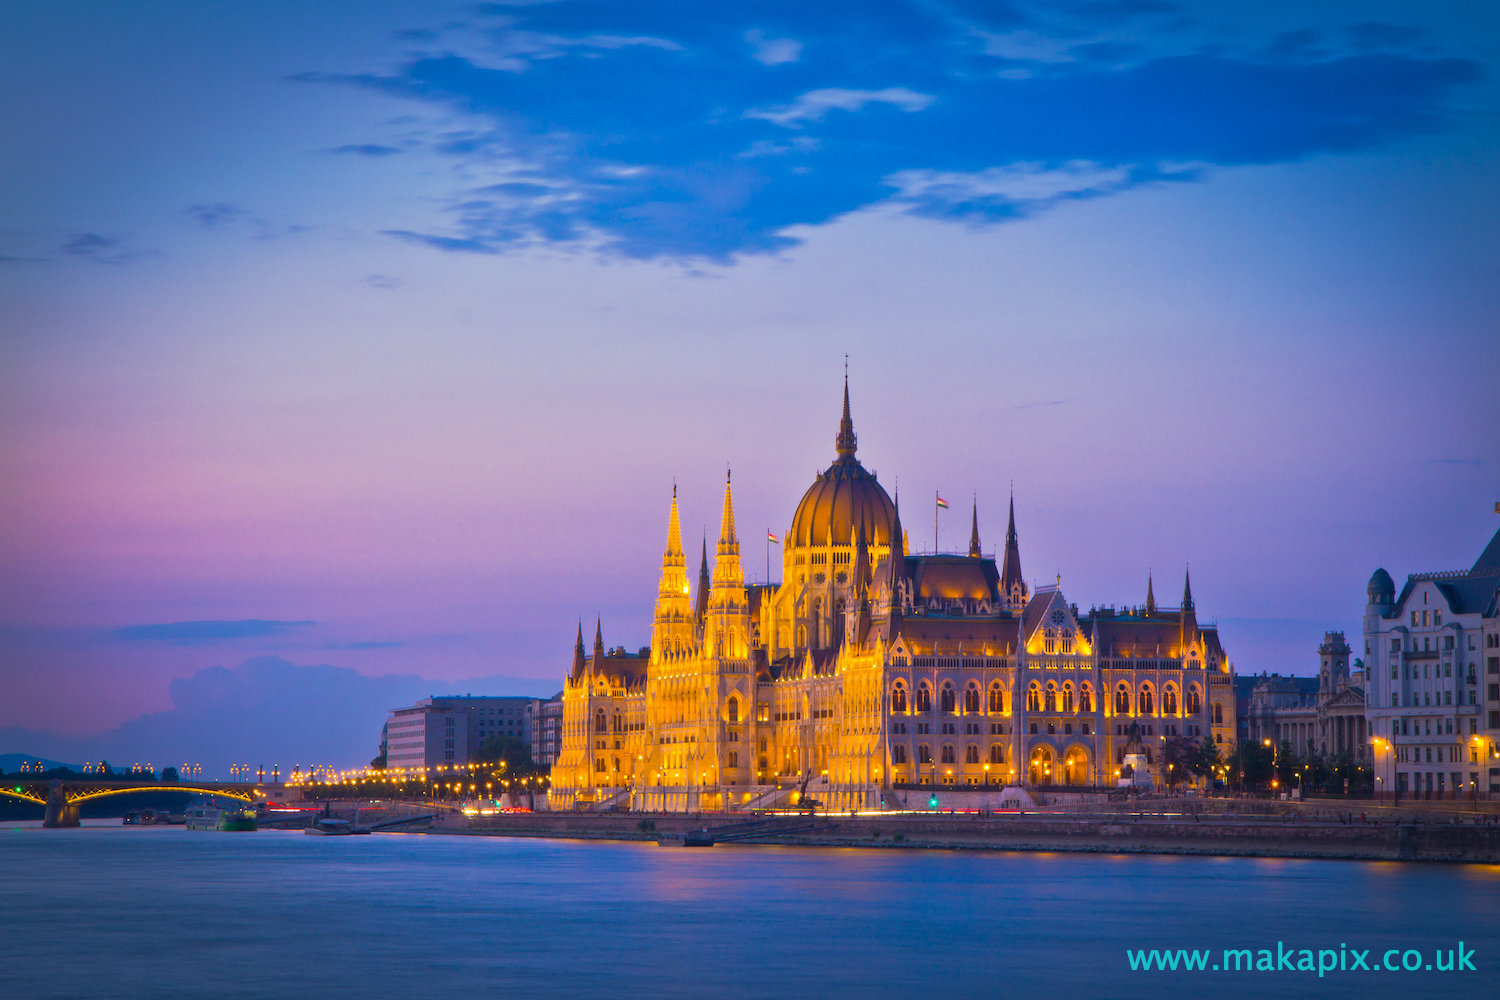 The Budapest Parliament Building at sunset